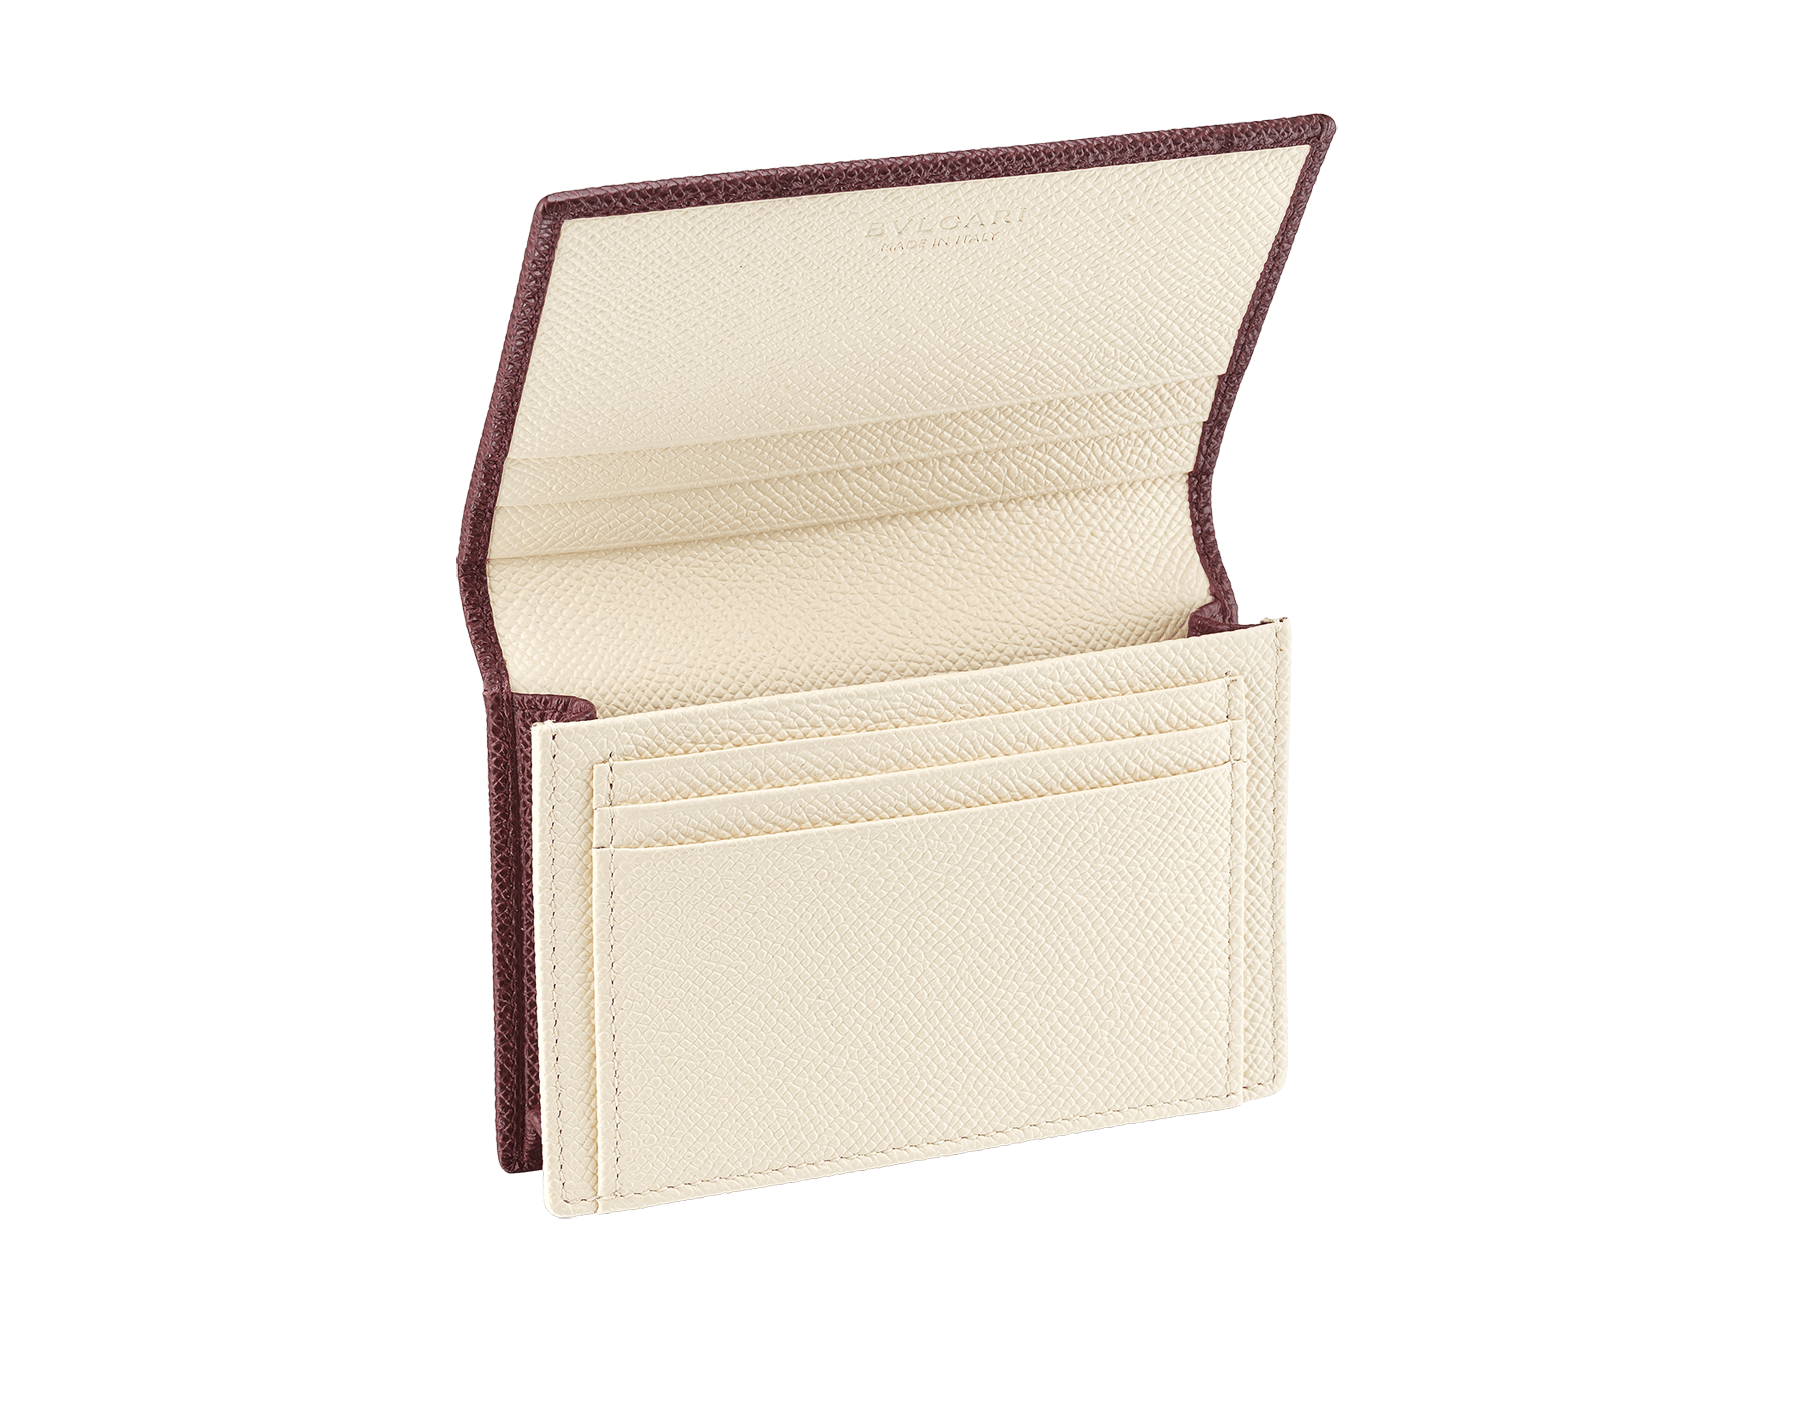 """""""BVLGARI BVLGARI"""" men's business card holder in Oxblood bordeaux and Ivory Opal white grain calf leather. Palladium-plated brass embellishment with logo. 291149 image 2"""